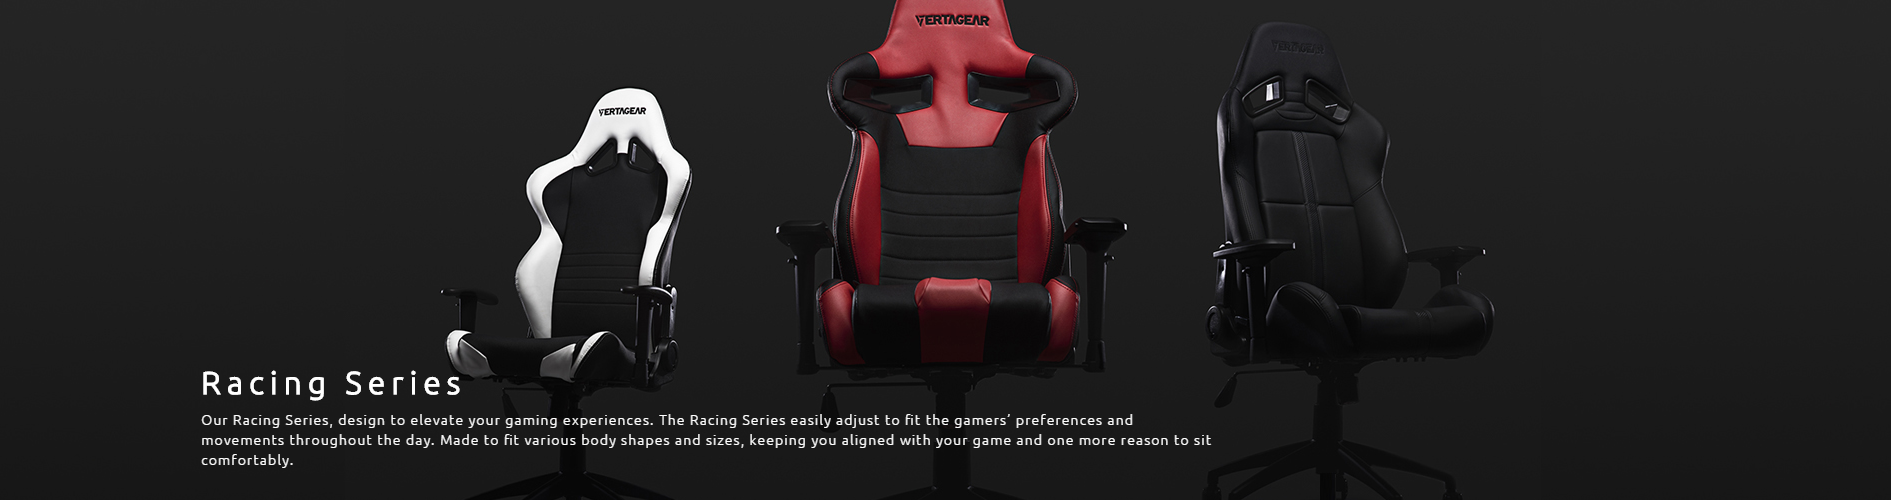 Remarkable Review Vertagear Sl 2000 Racing Series Gaming Chair Bralicious Painted Fabric Chair Ideas Braliciousco